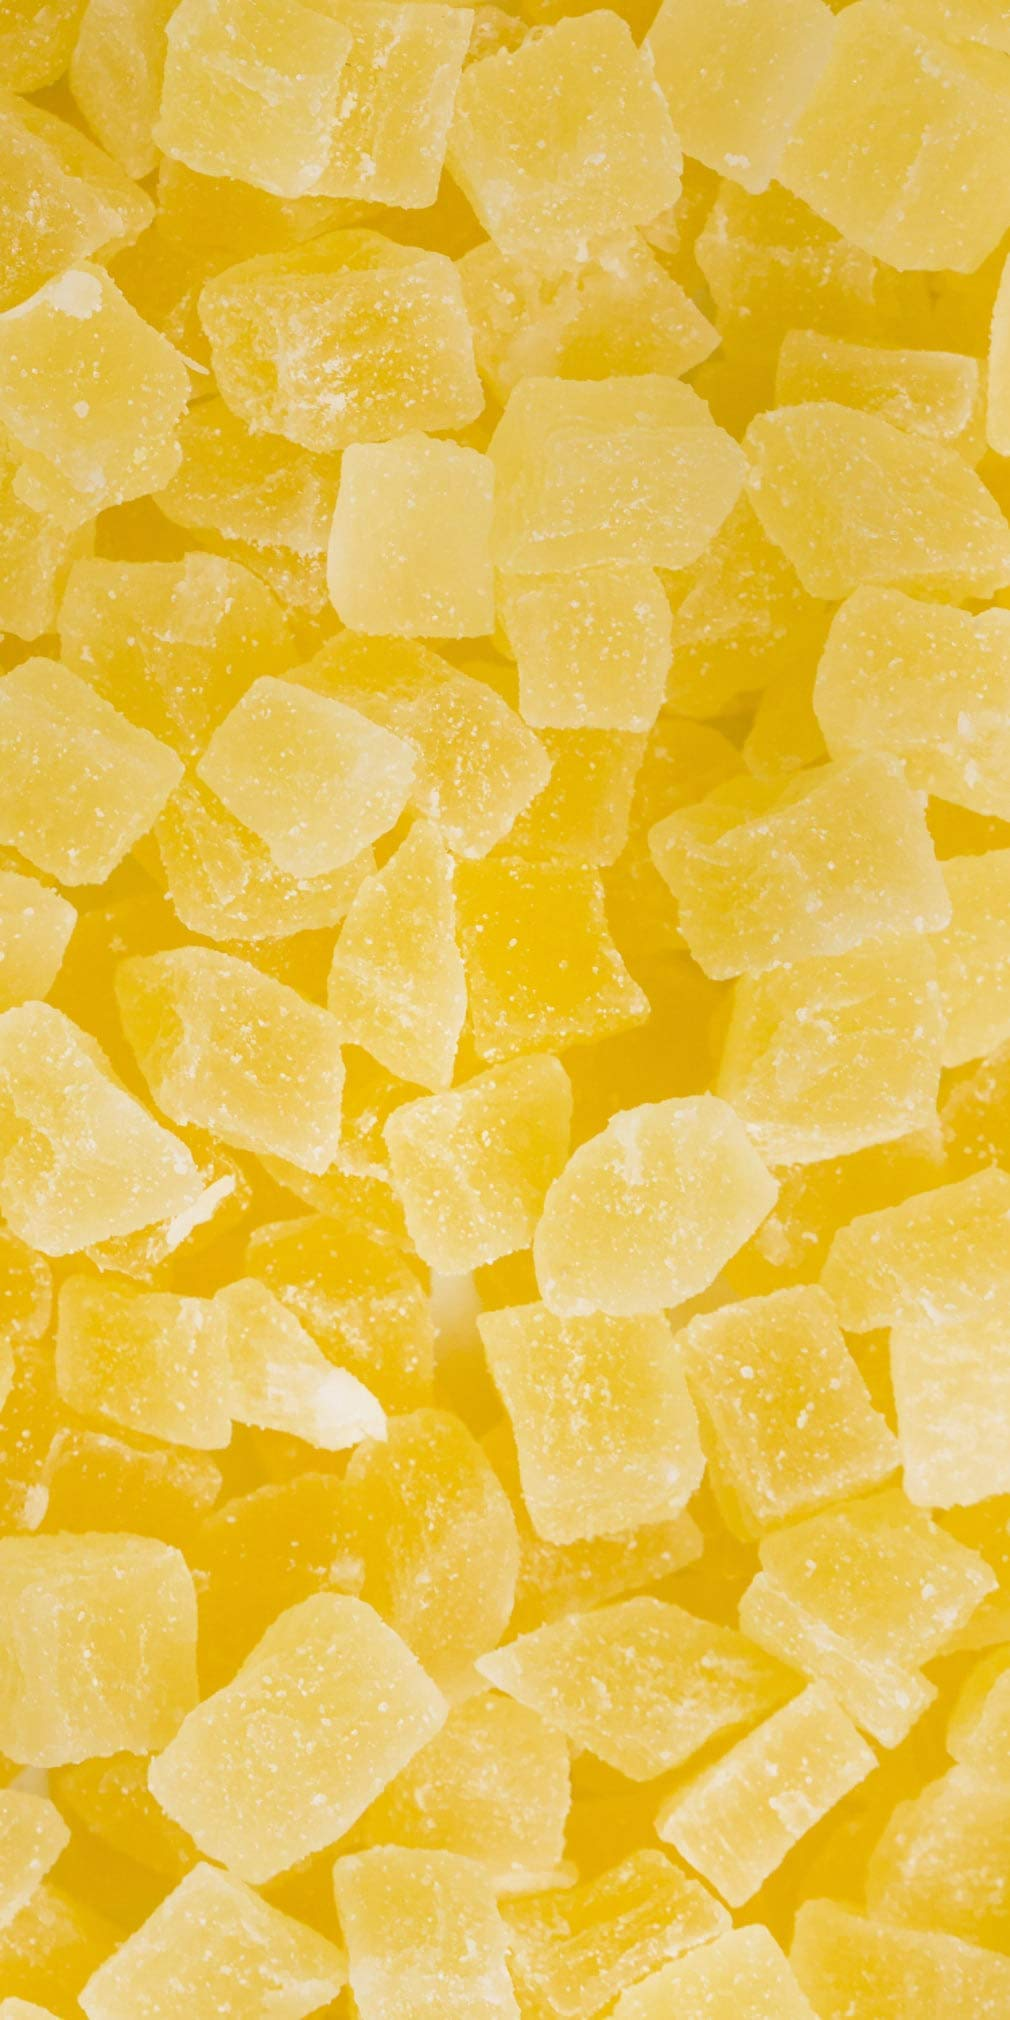 Pineapple Diced Bulk Gourmet Tropical Pineapple Chunks 10 Pound Wholesale Value Box by Gourmet Nuts And Dried Fruit